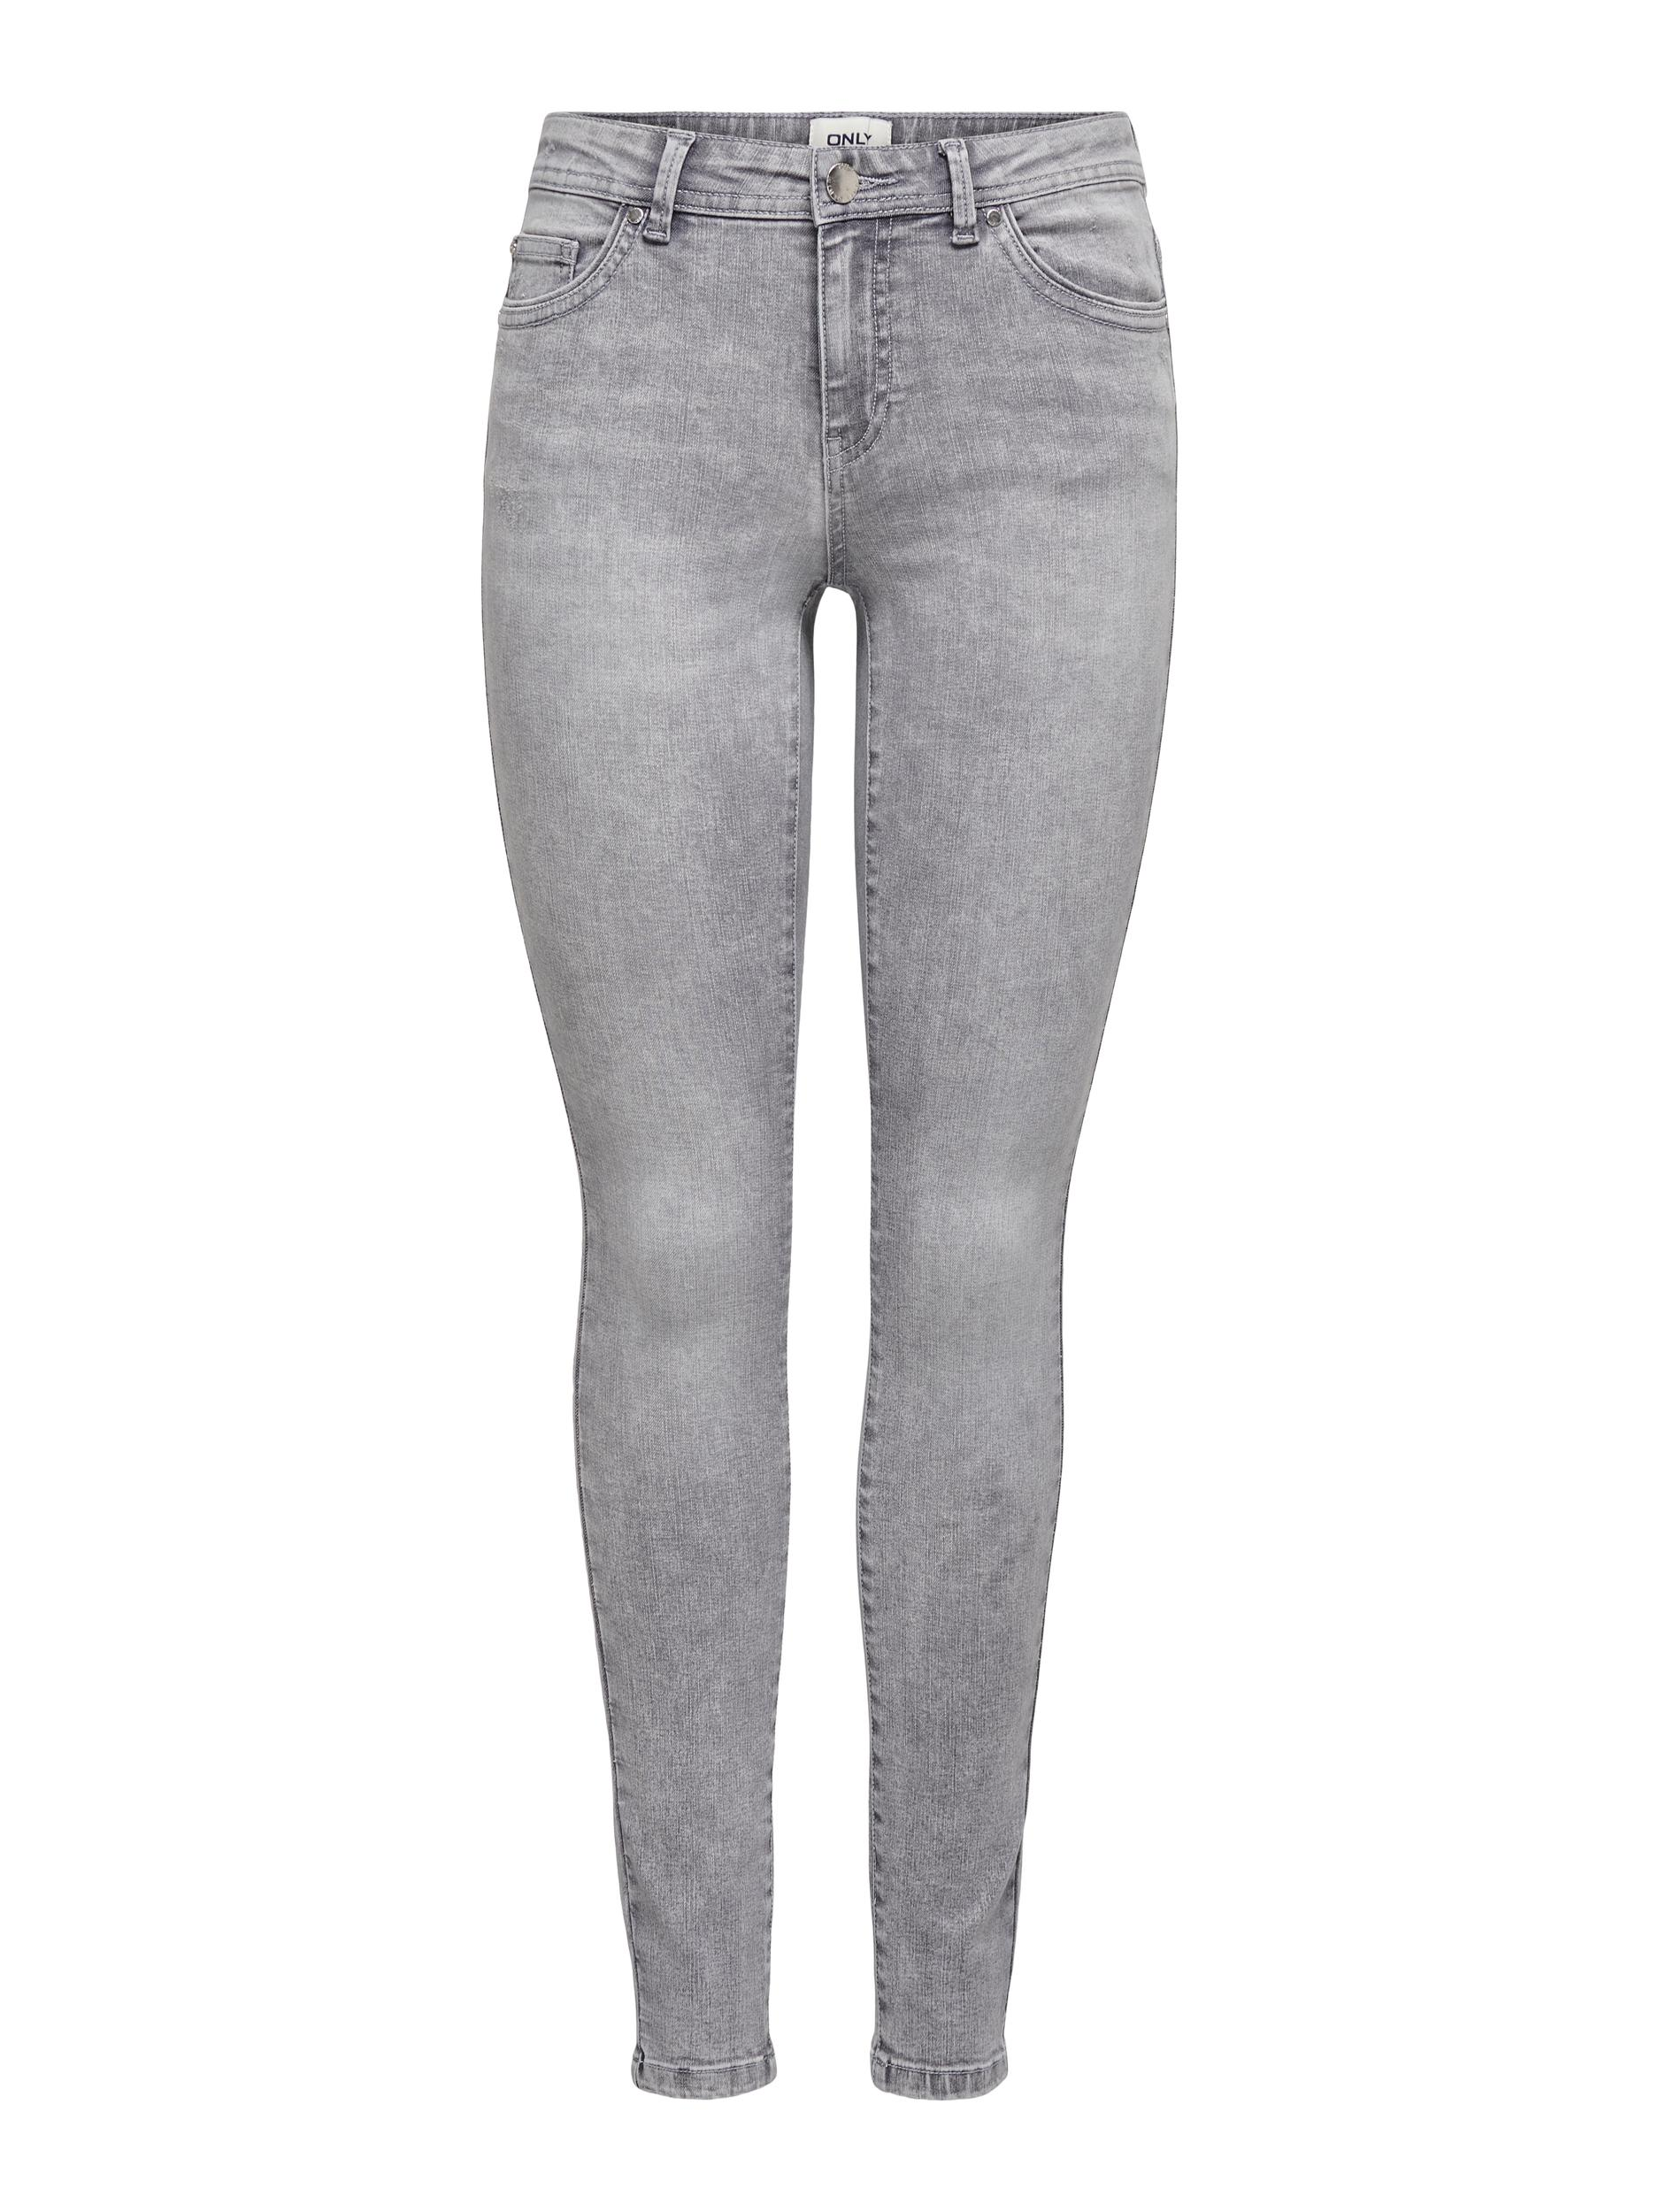 Jeans Wauw